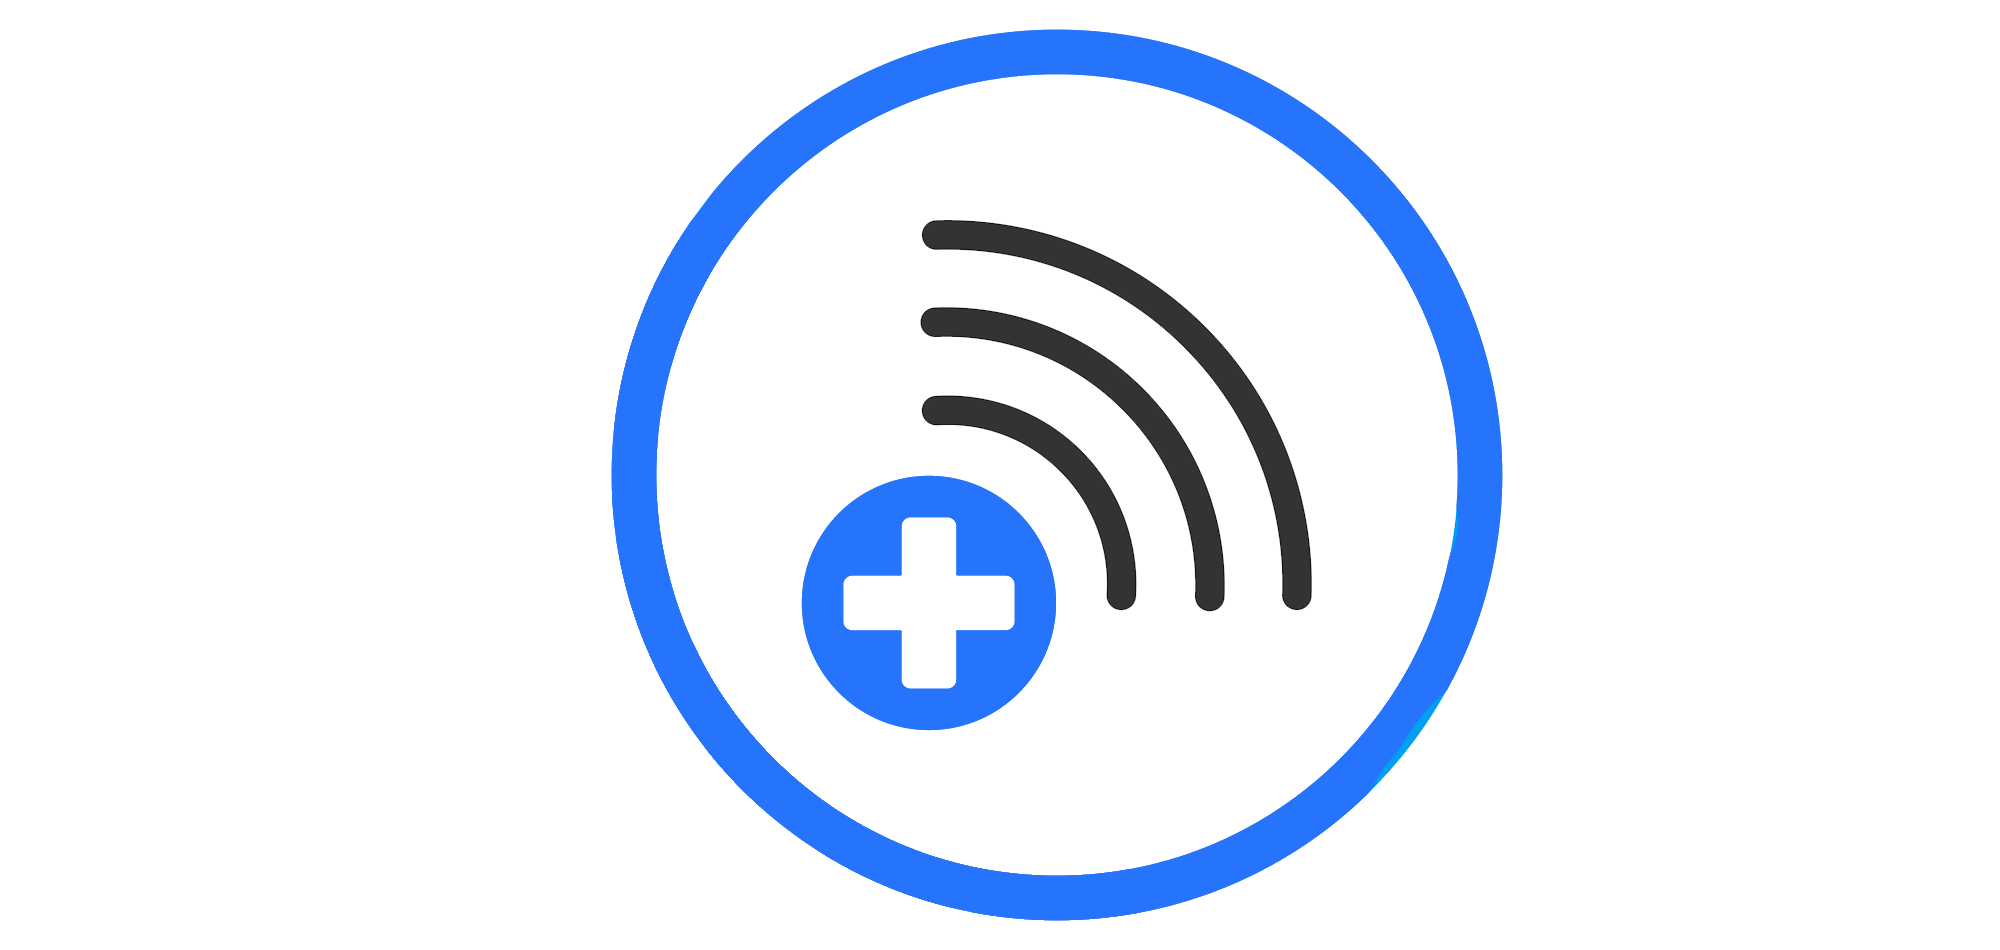 Hospital Wireless Security: How to Provide HIPAA Compliant WiFi Service